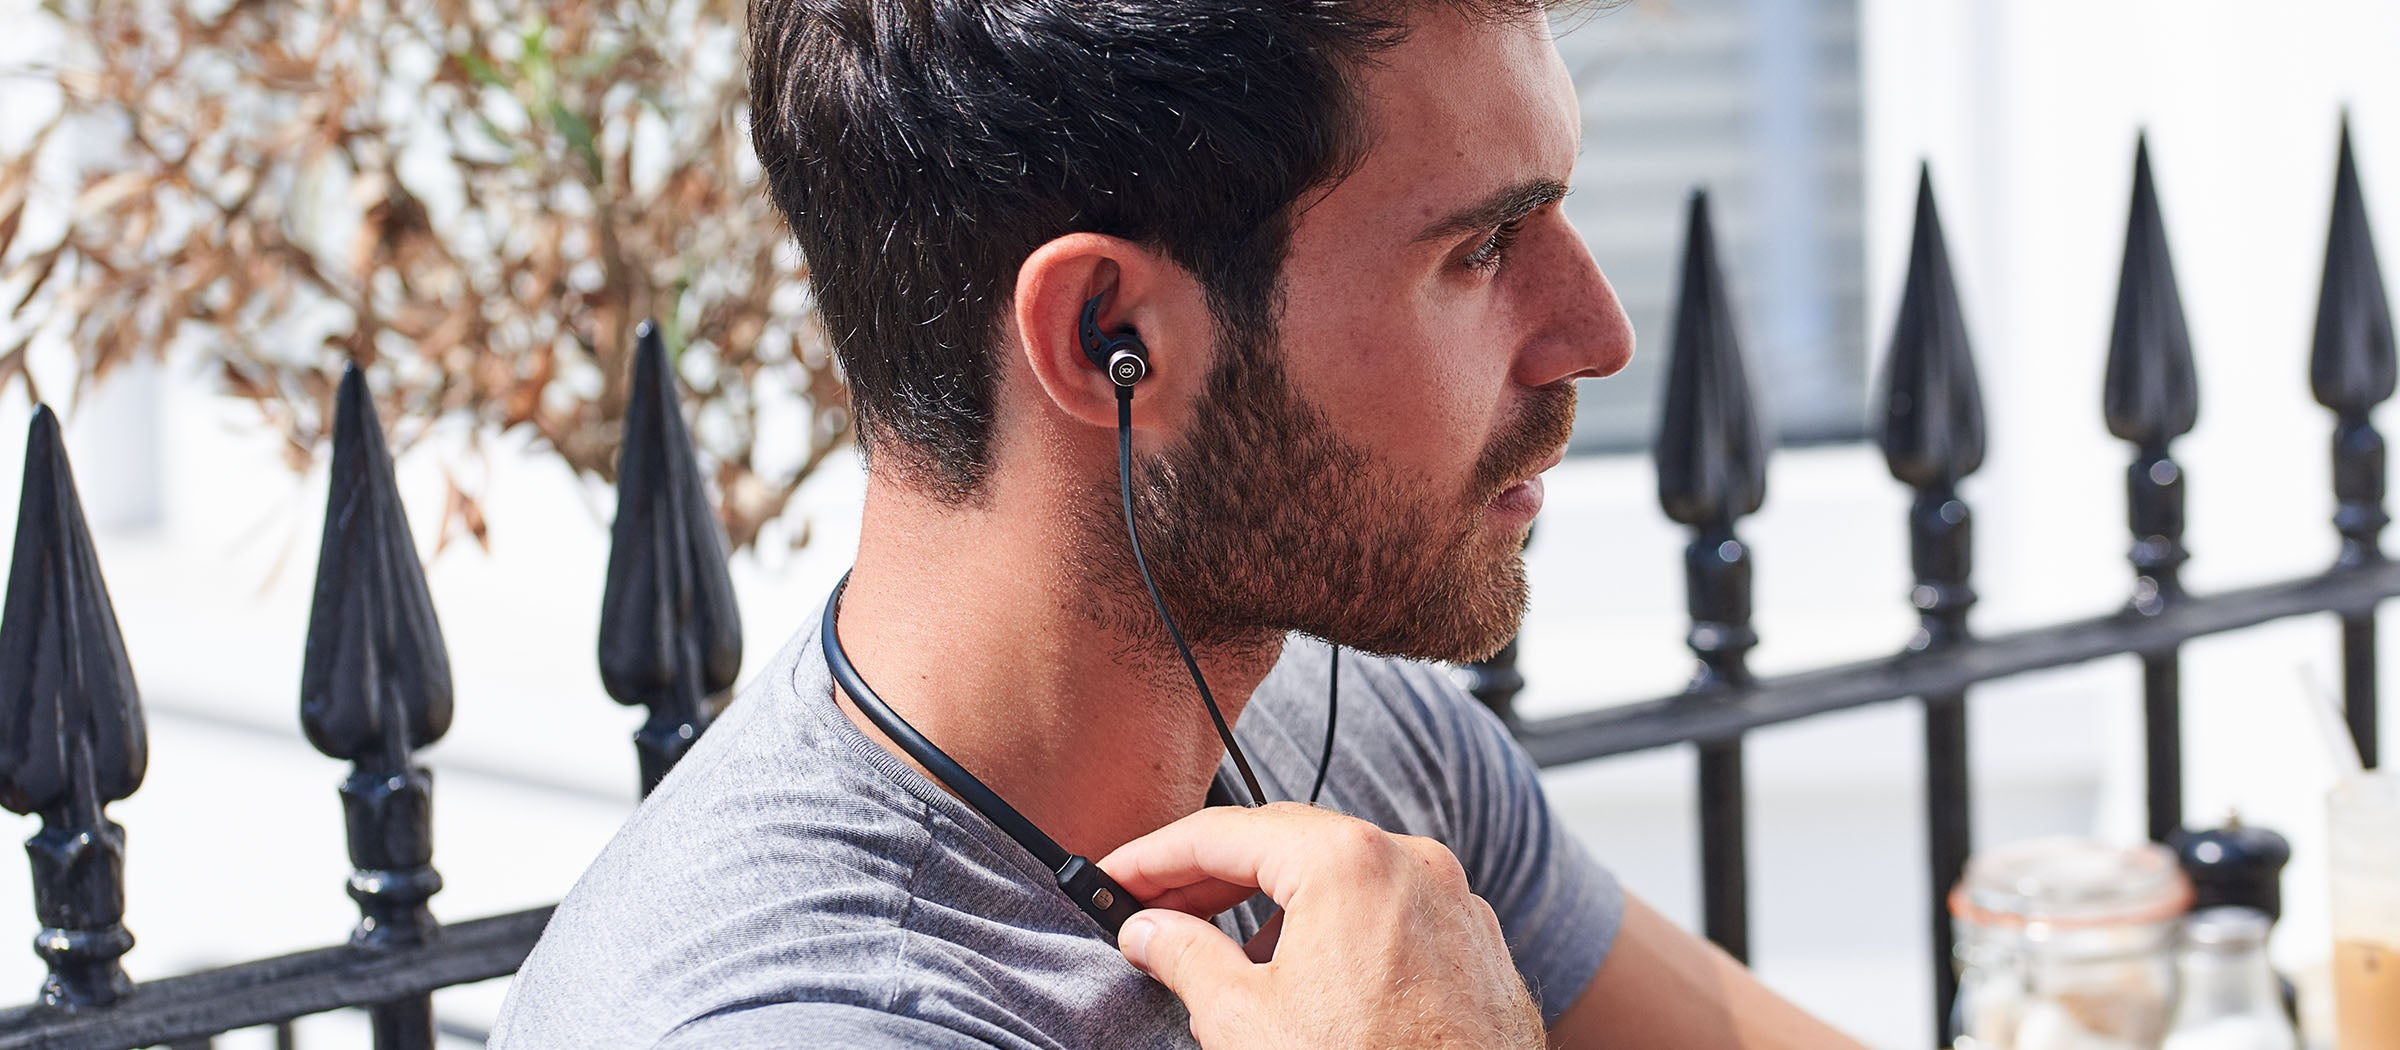 Ultrafit 1 wireless headphones